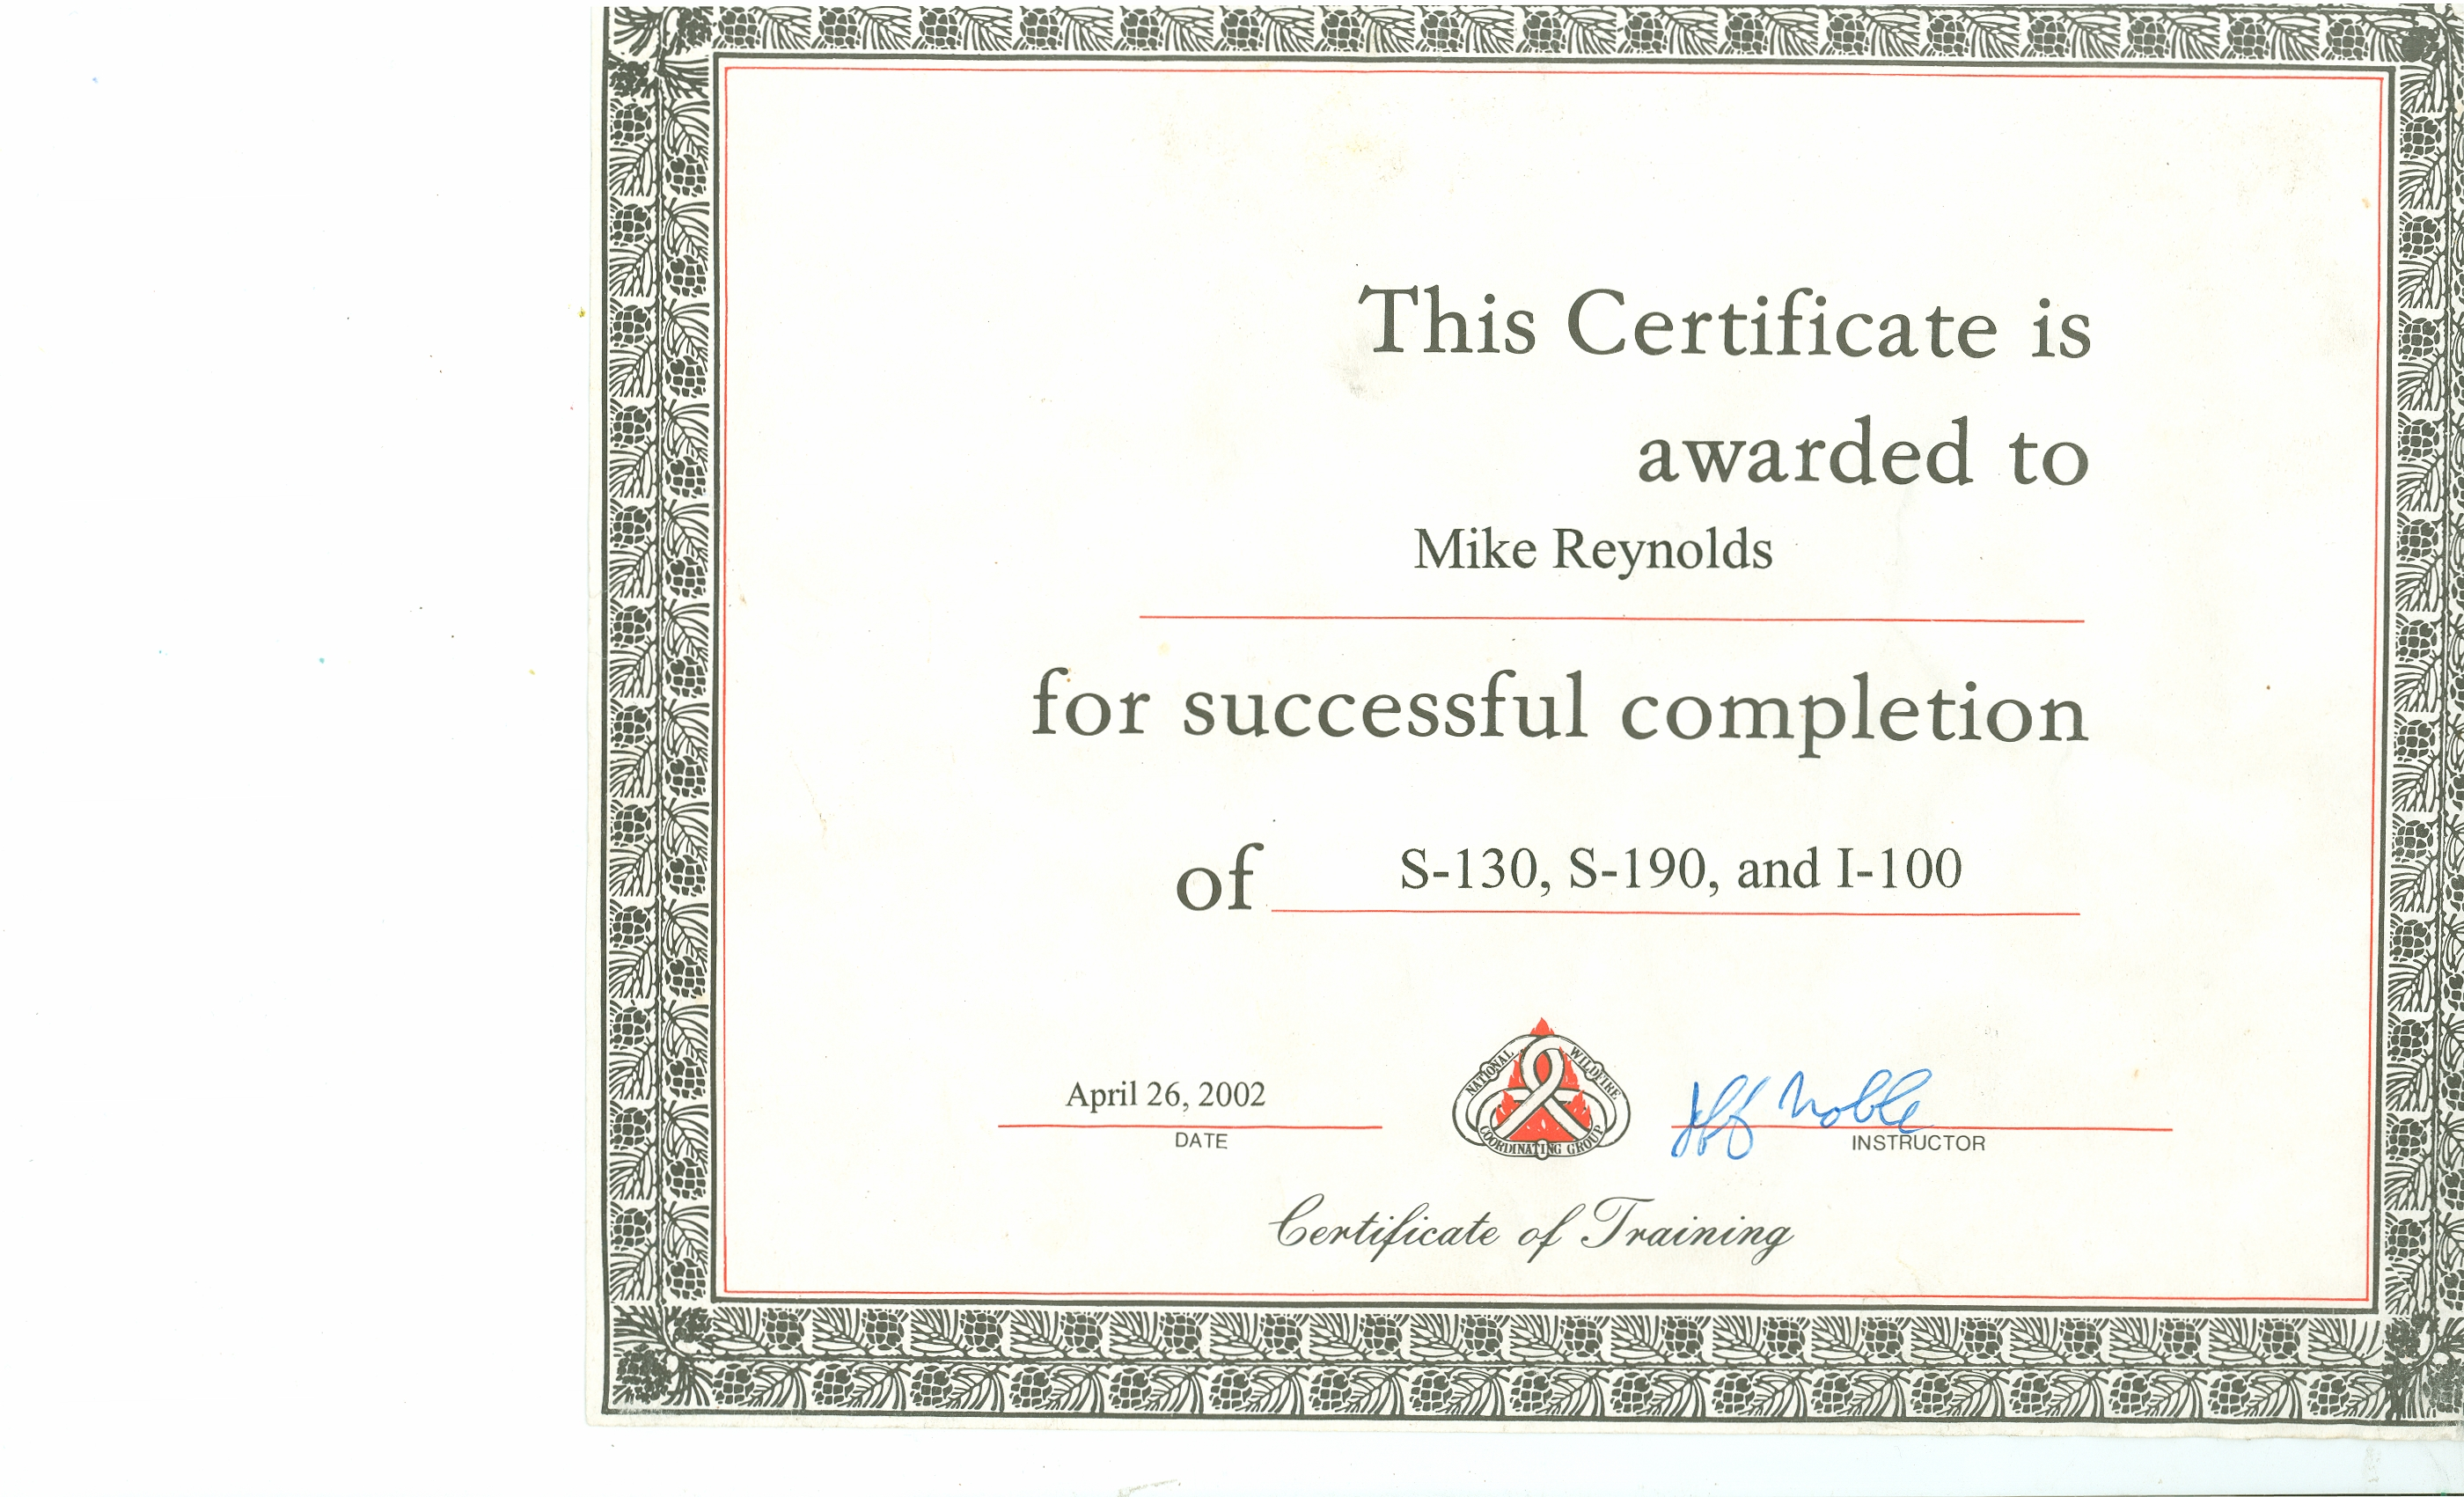 Mdr certifications basic wildland fire fighting type ii s 130 s 190 i 100 1betcityfo Image collections